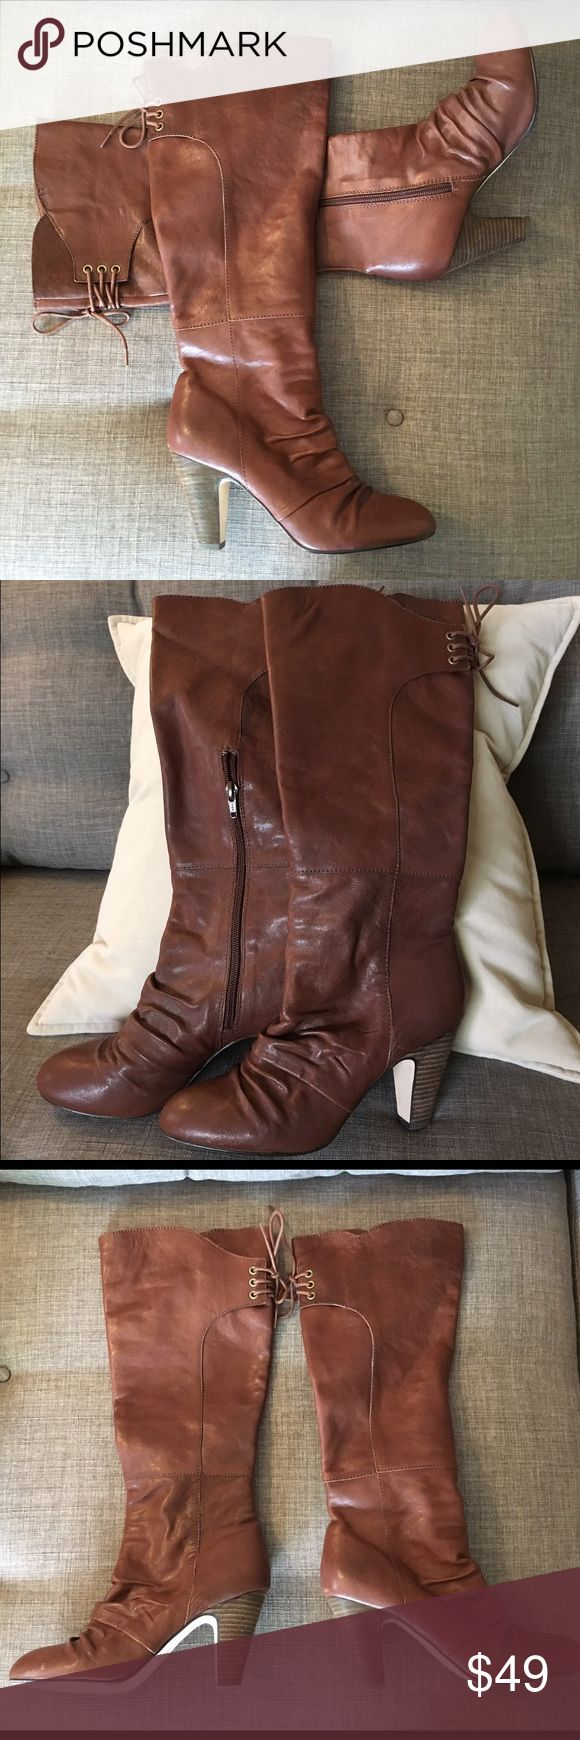 Seychelles Boots Great pair of Seychelles boots. Lace up detail in back. Leather upper. Good condition. Seychelles Shoes Heeled Boots